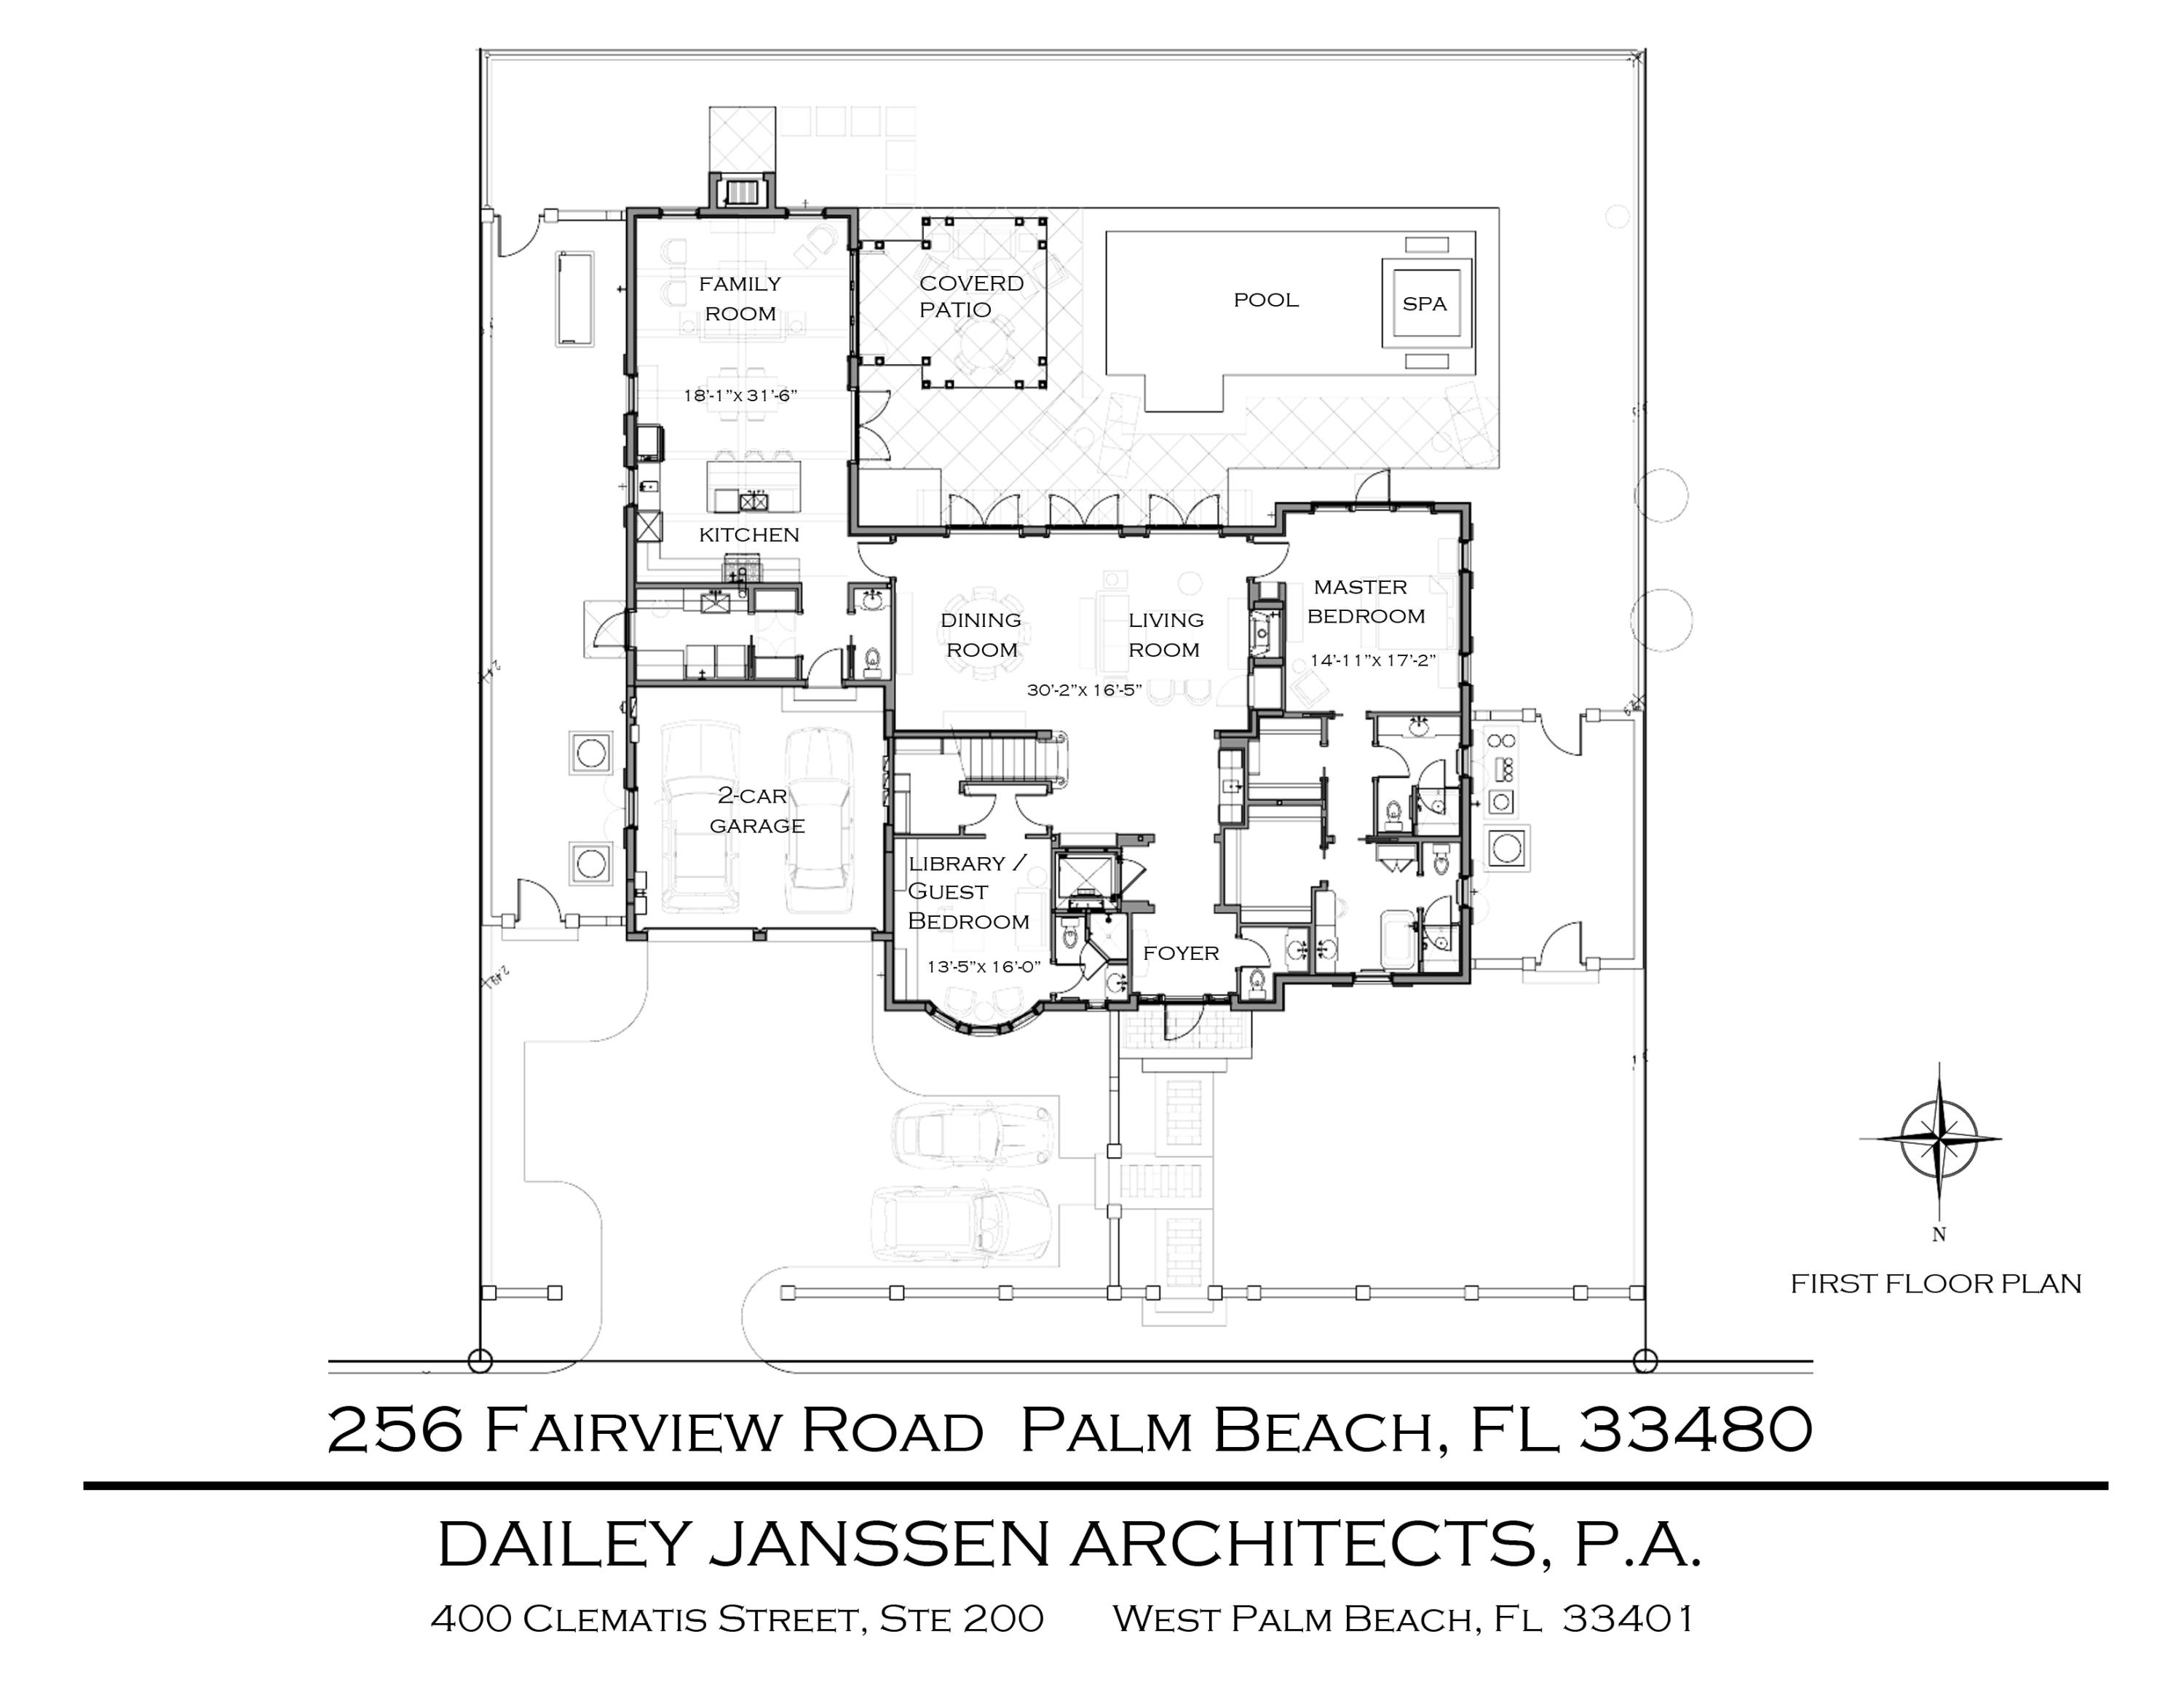 RAFALSKY MARK PALM BEACH REAL ESTATE